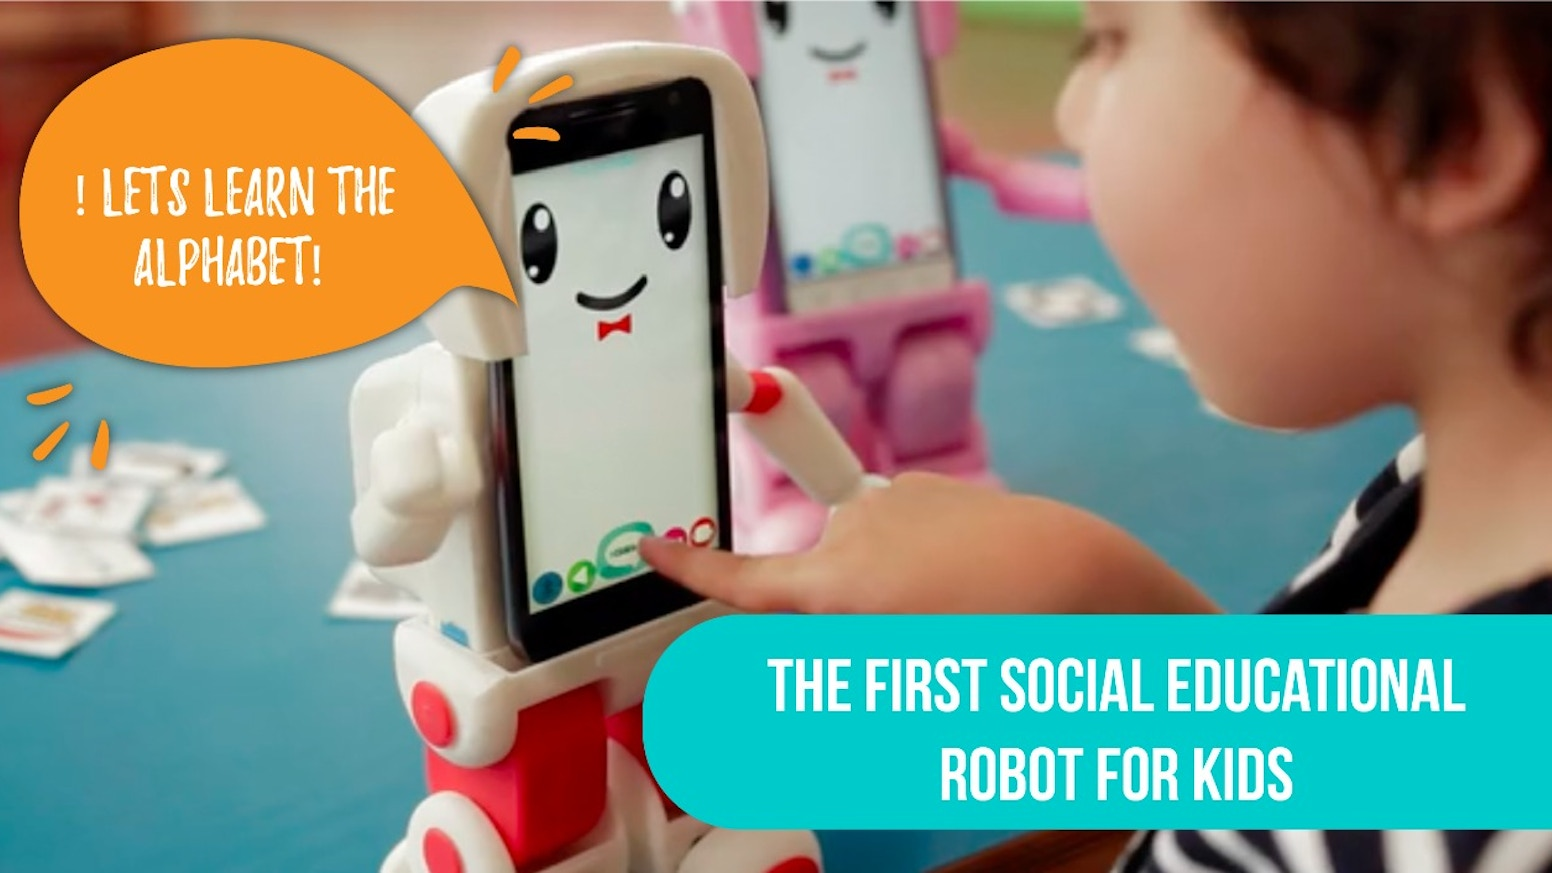 With a robotic body we transform smartphones into social robots and use them as a tool for education.